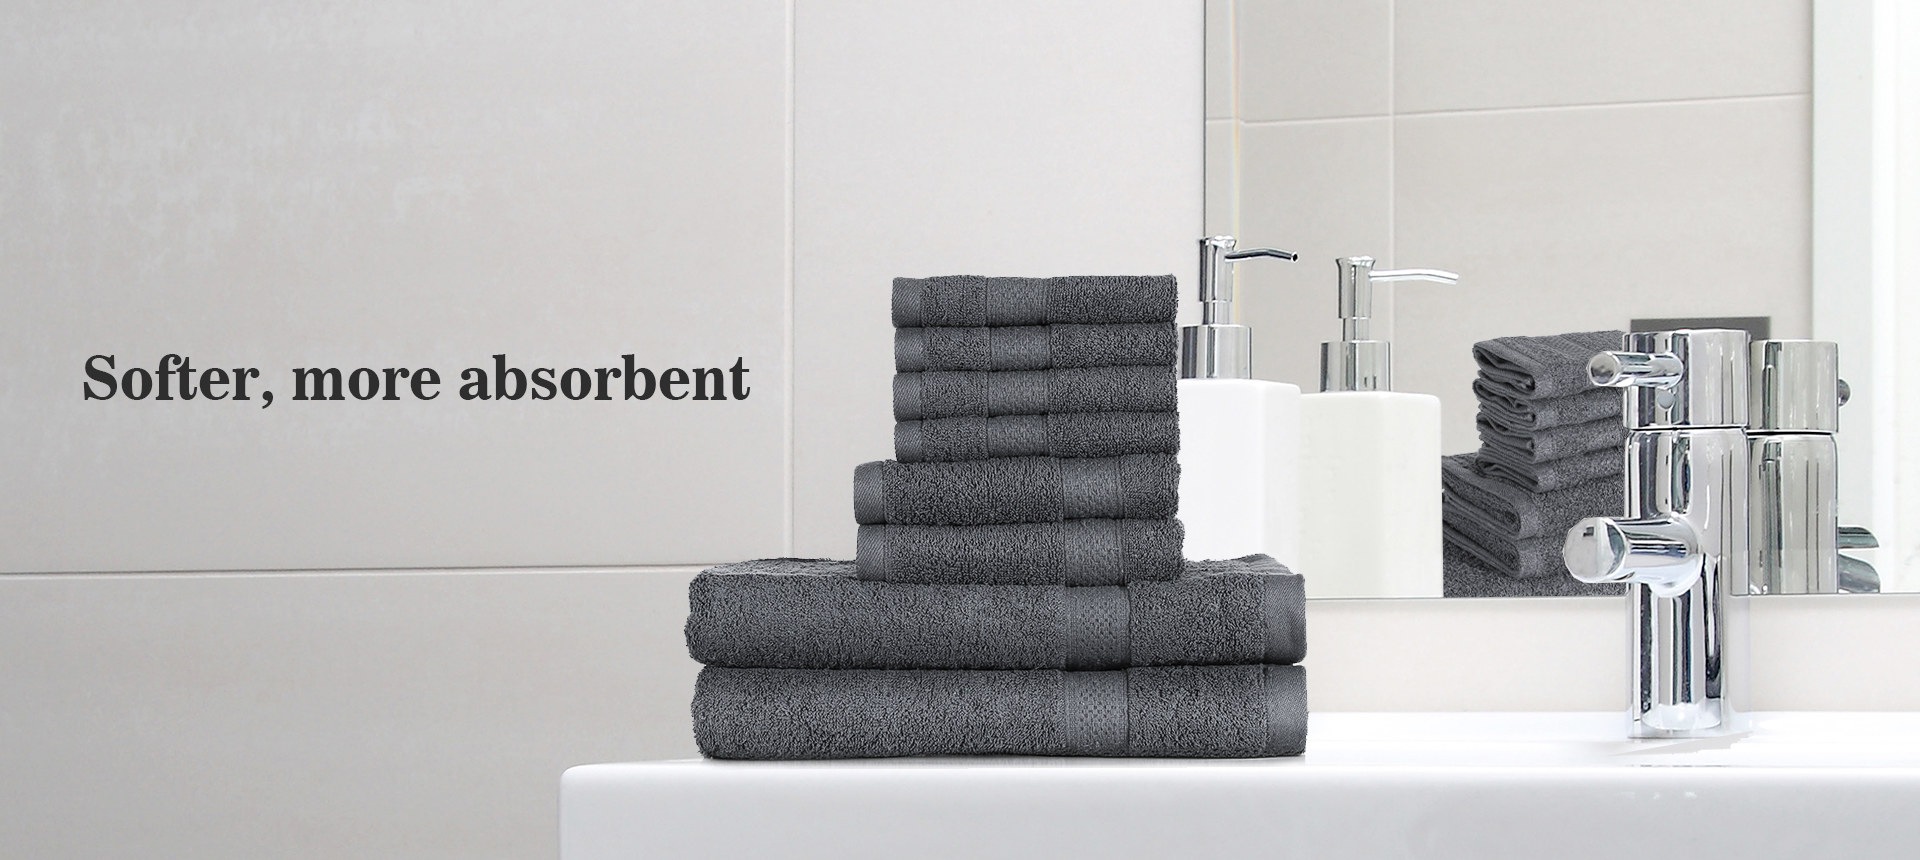 Soft More Absorbent